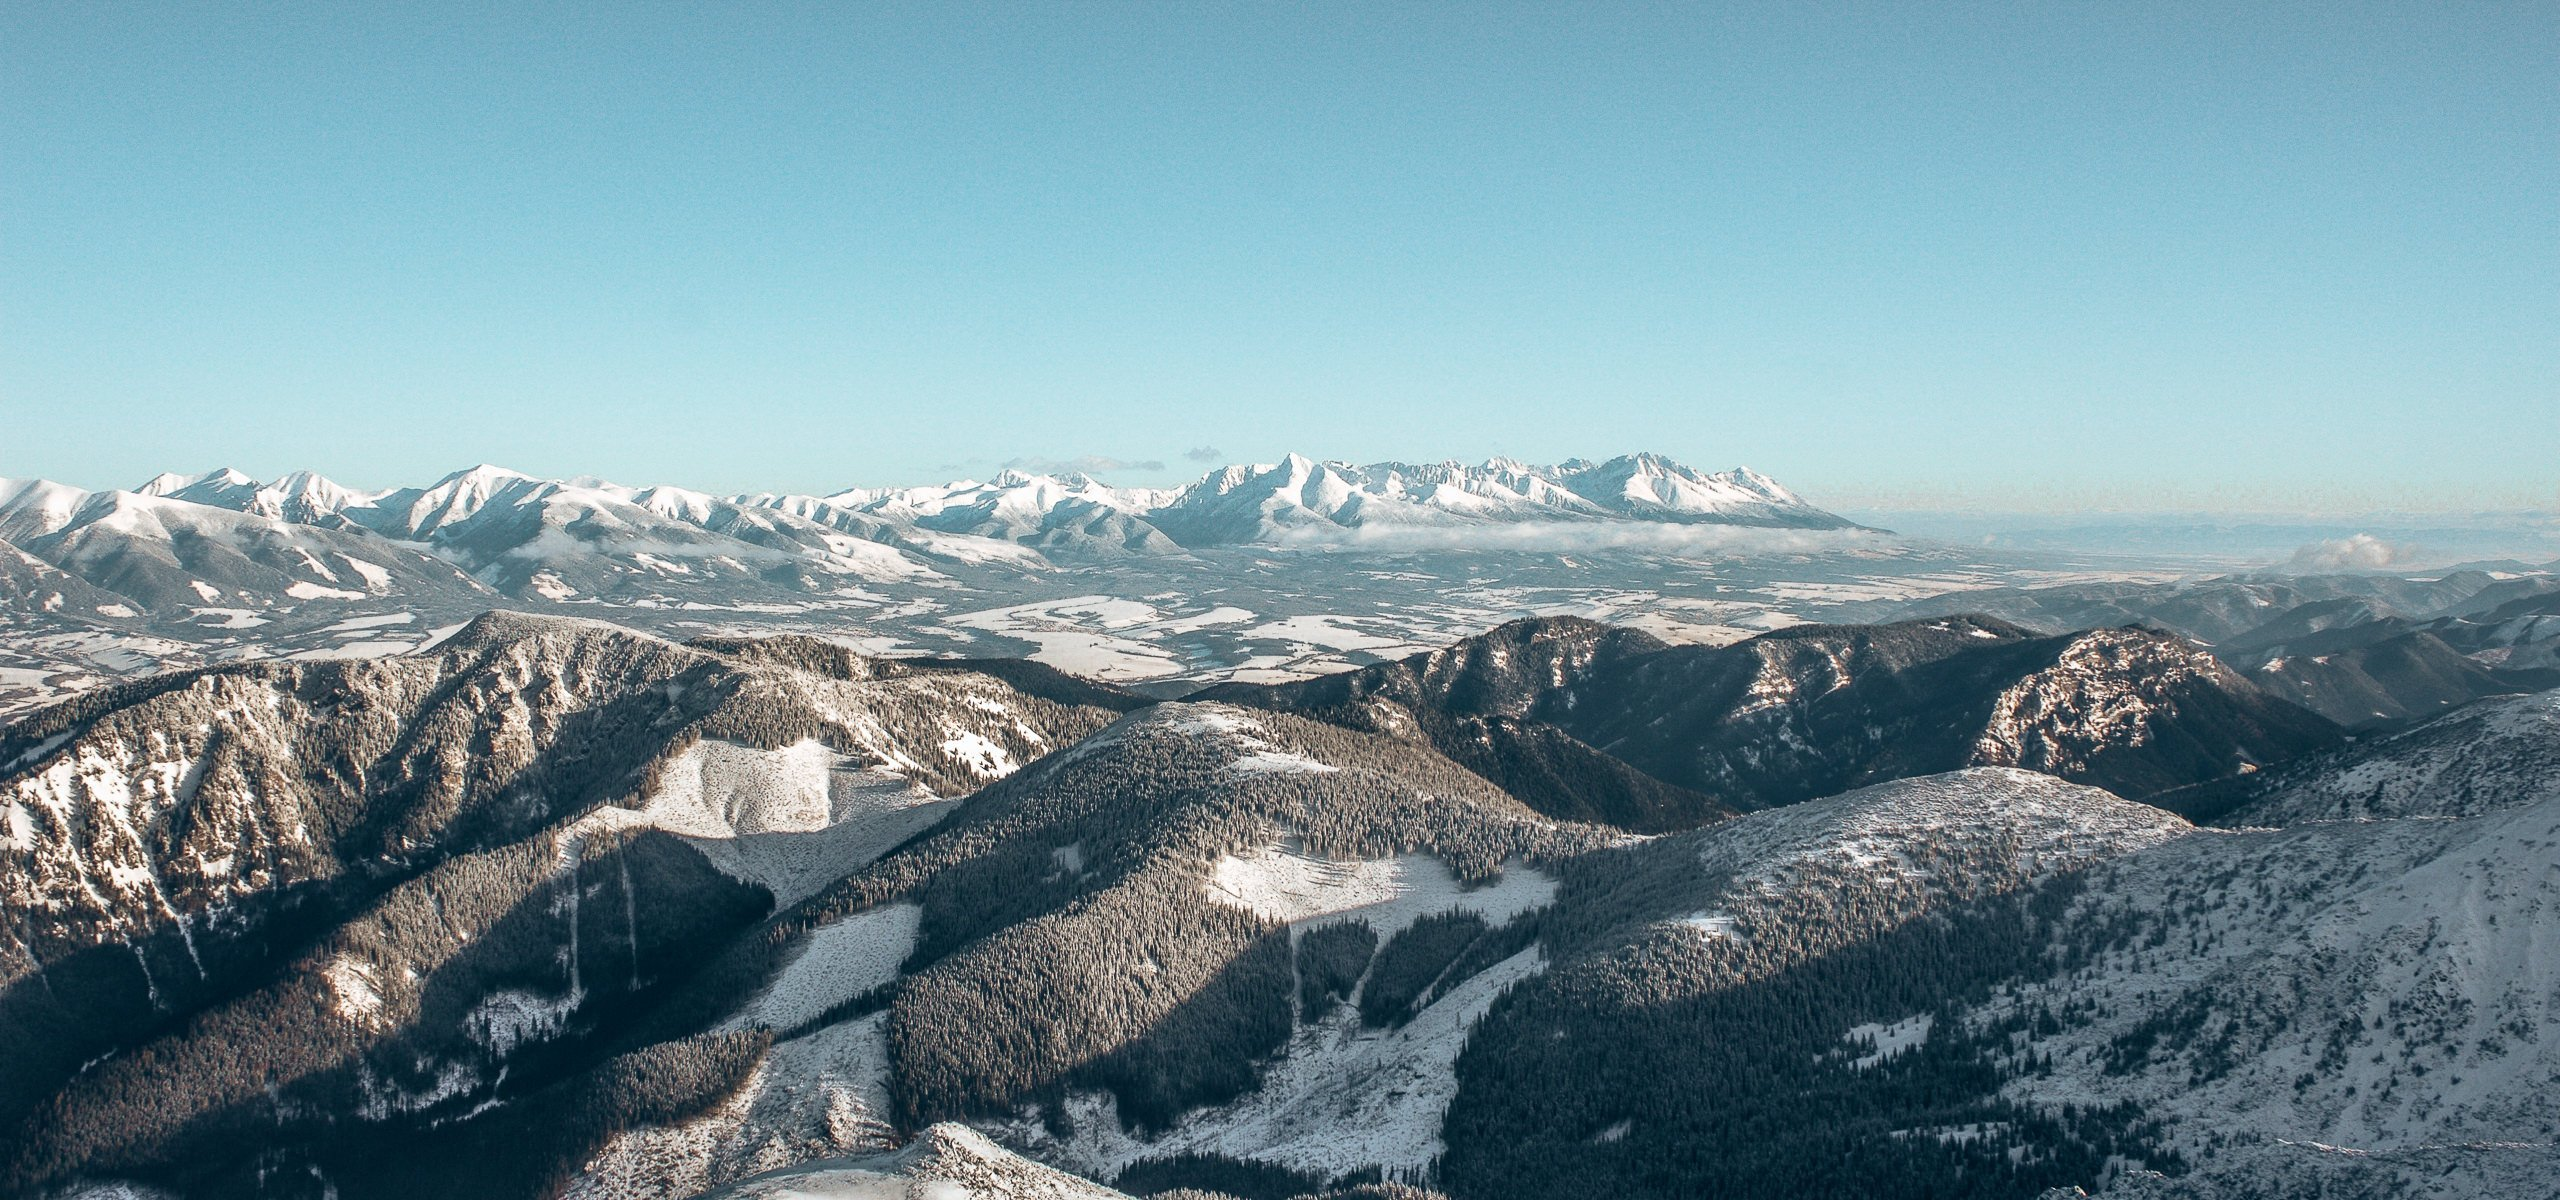 The rolling snow dusted mountain tops in Slovakia